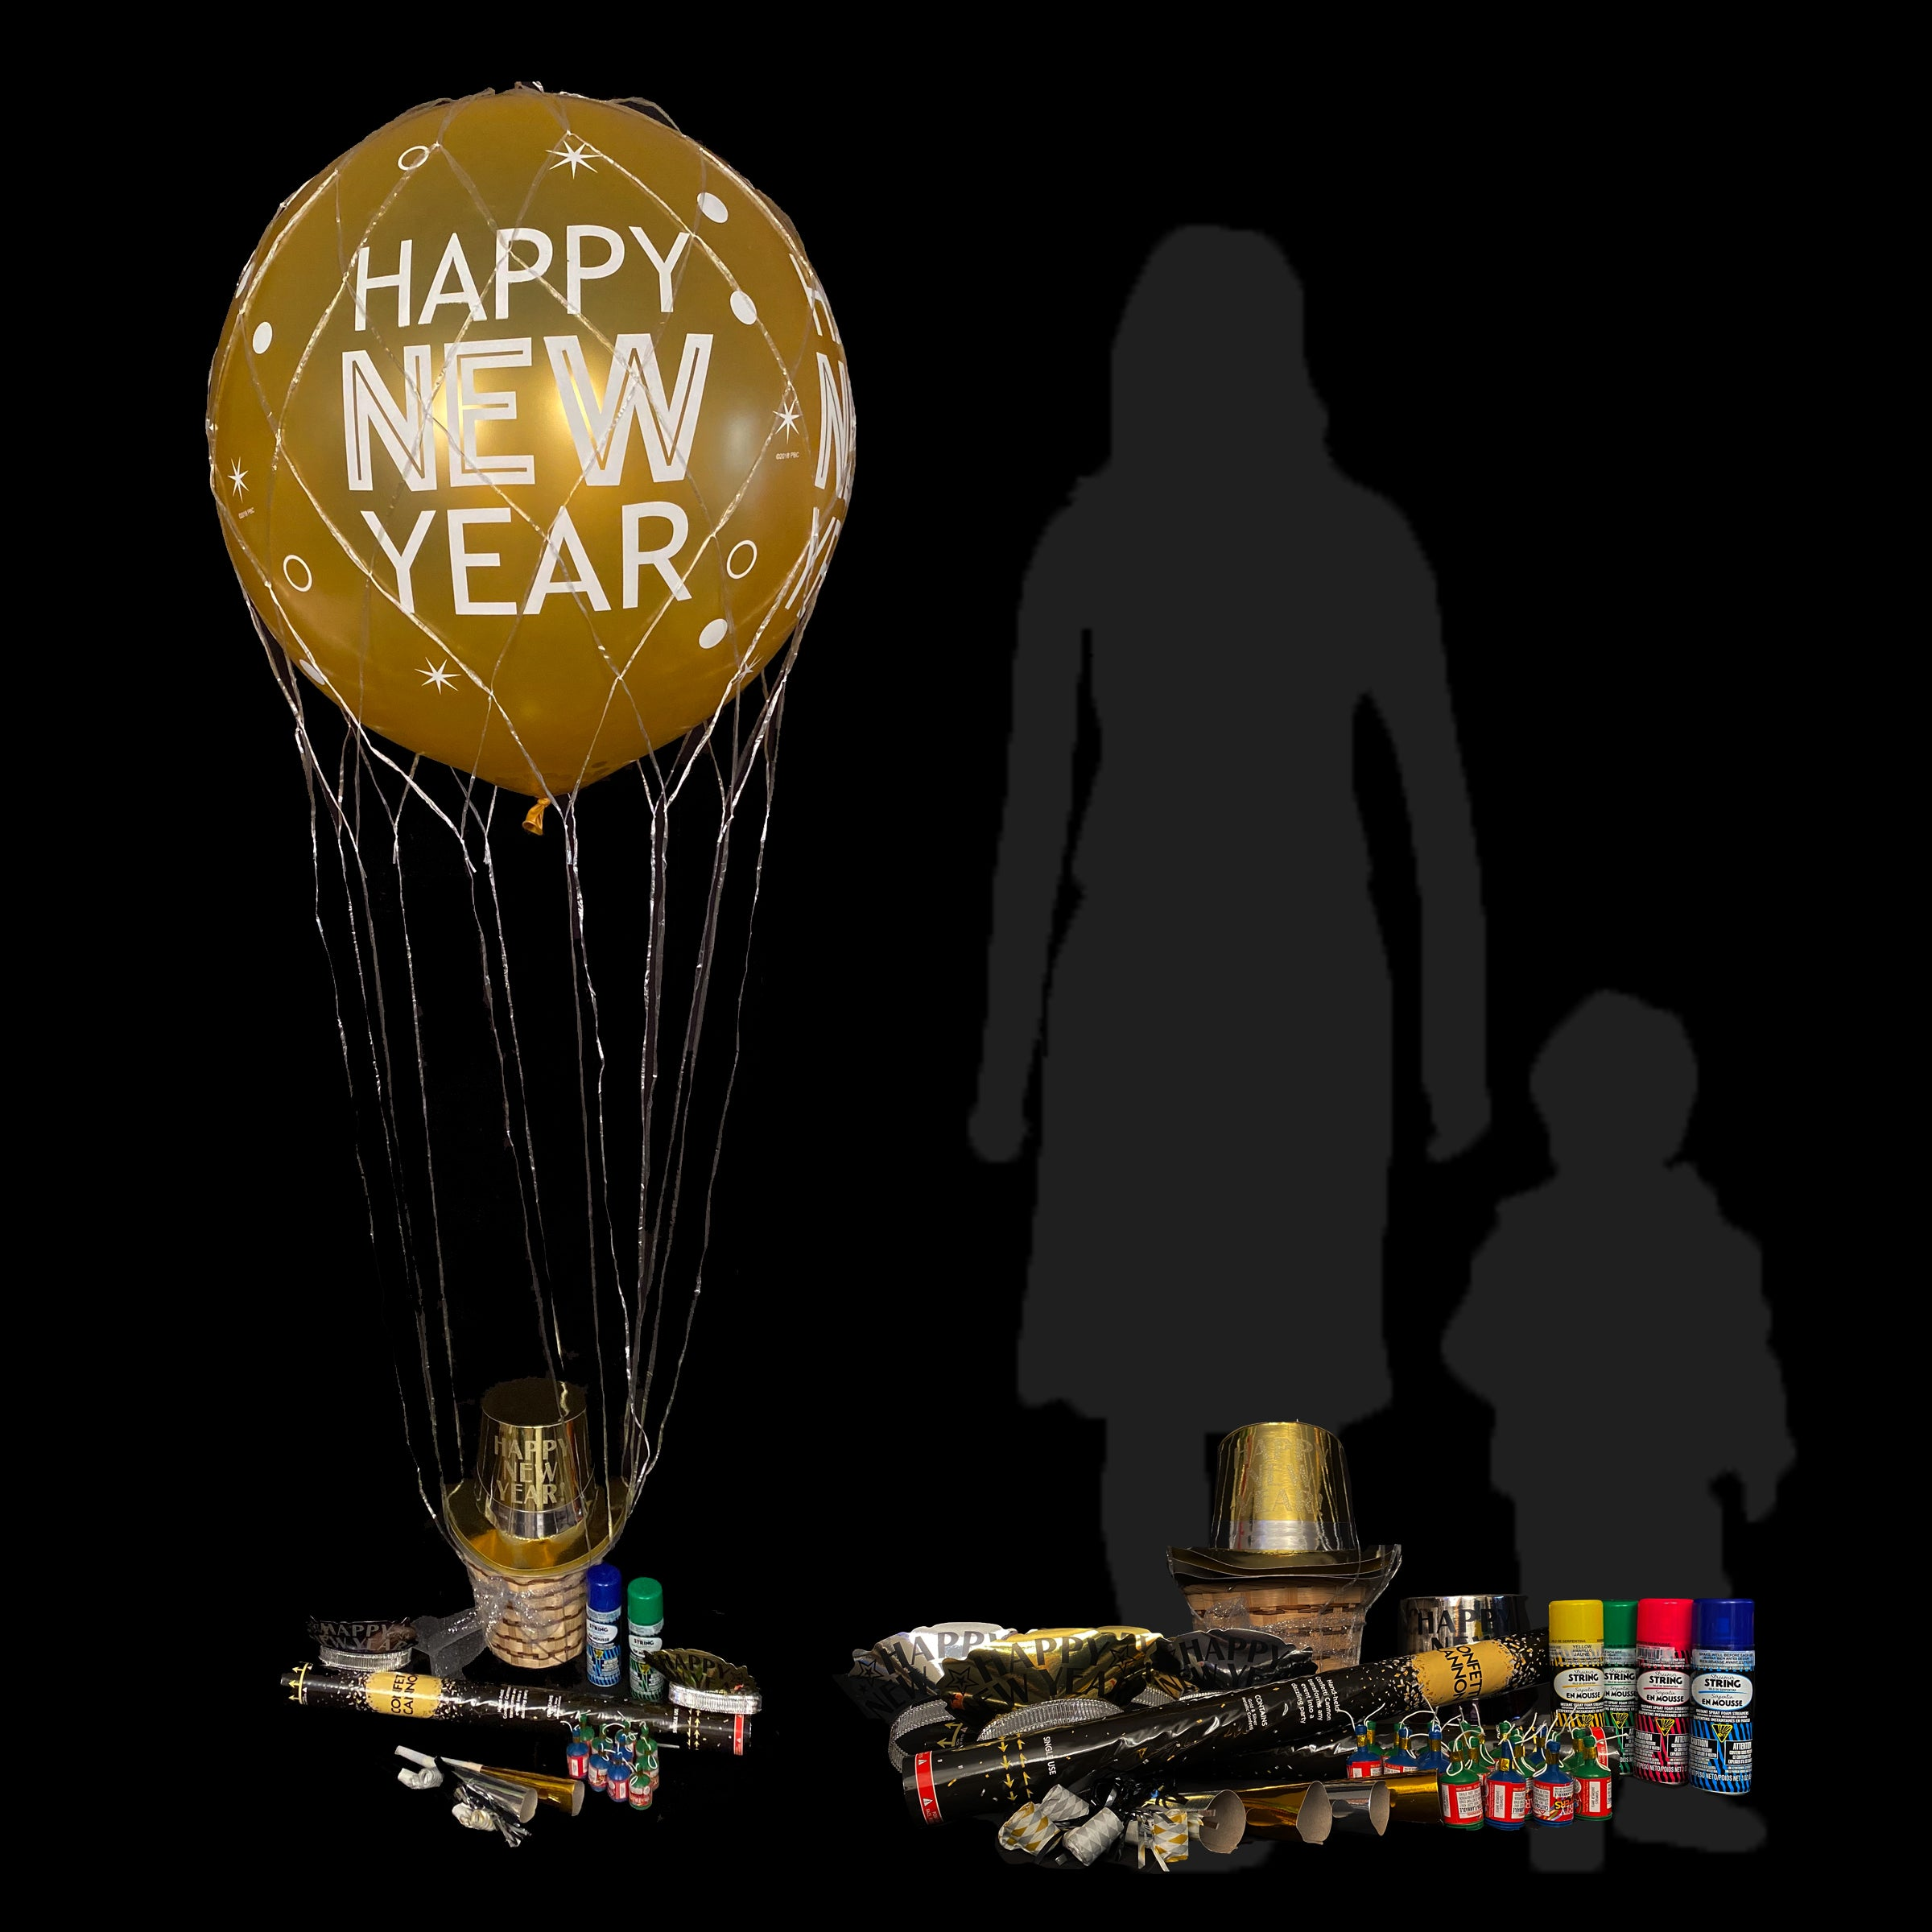 Complete New Year party kit with confetti filled 3' balloon